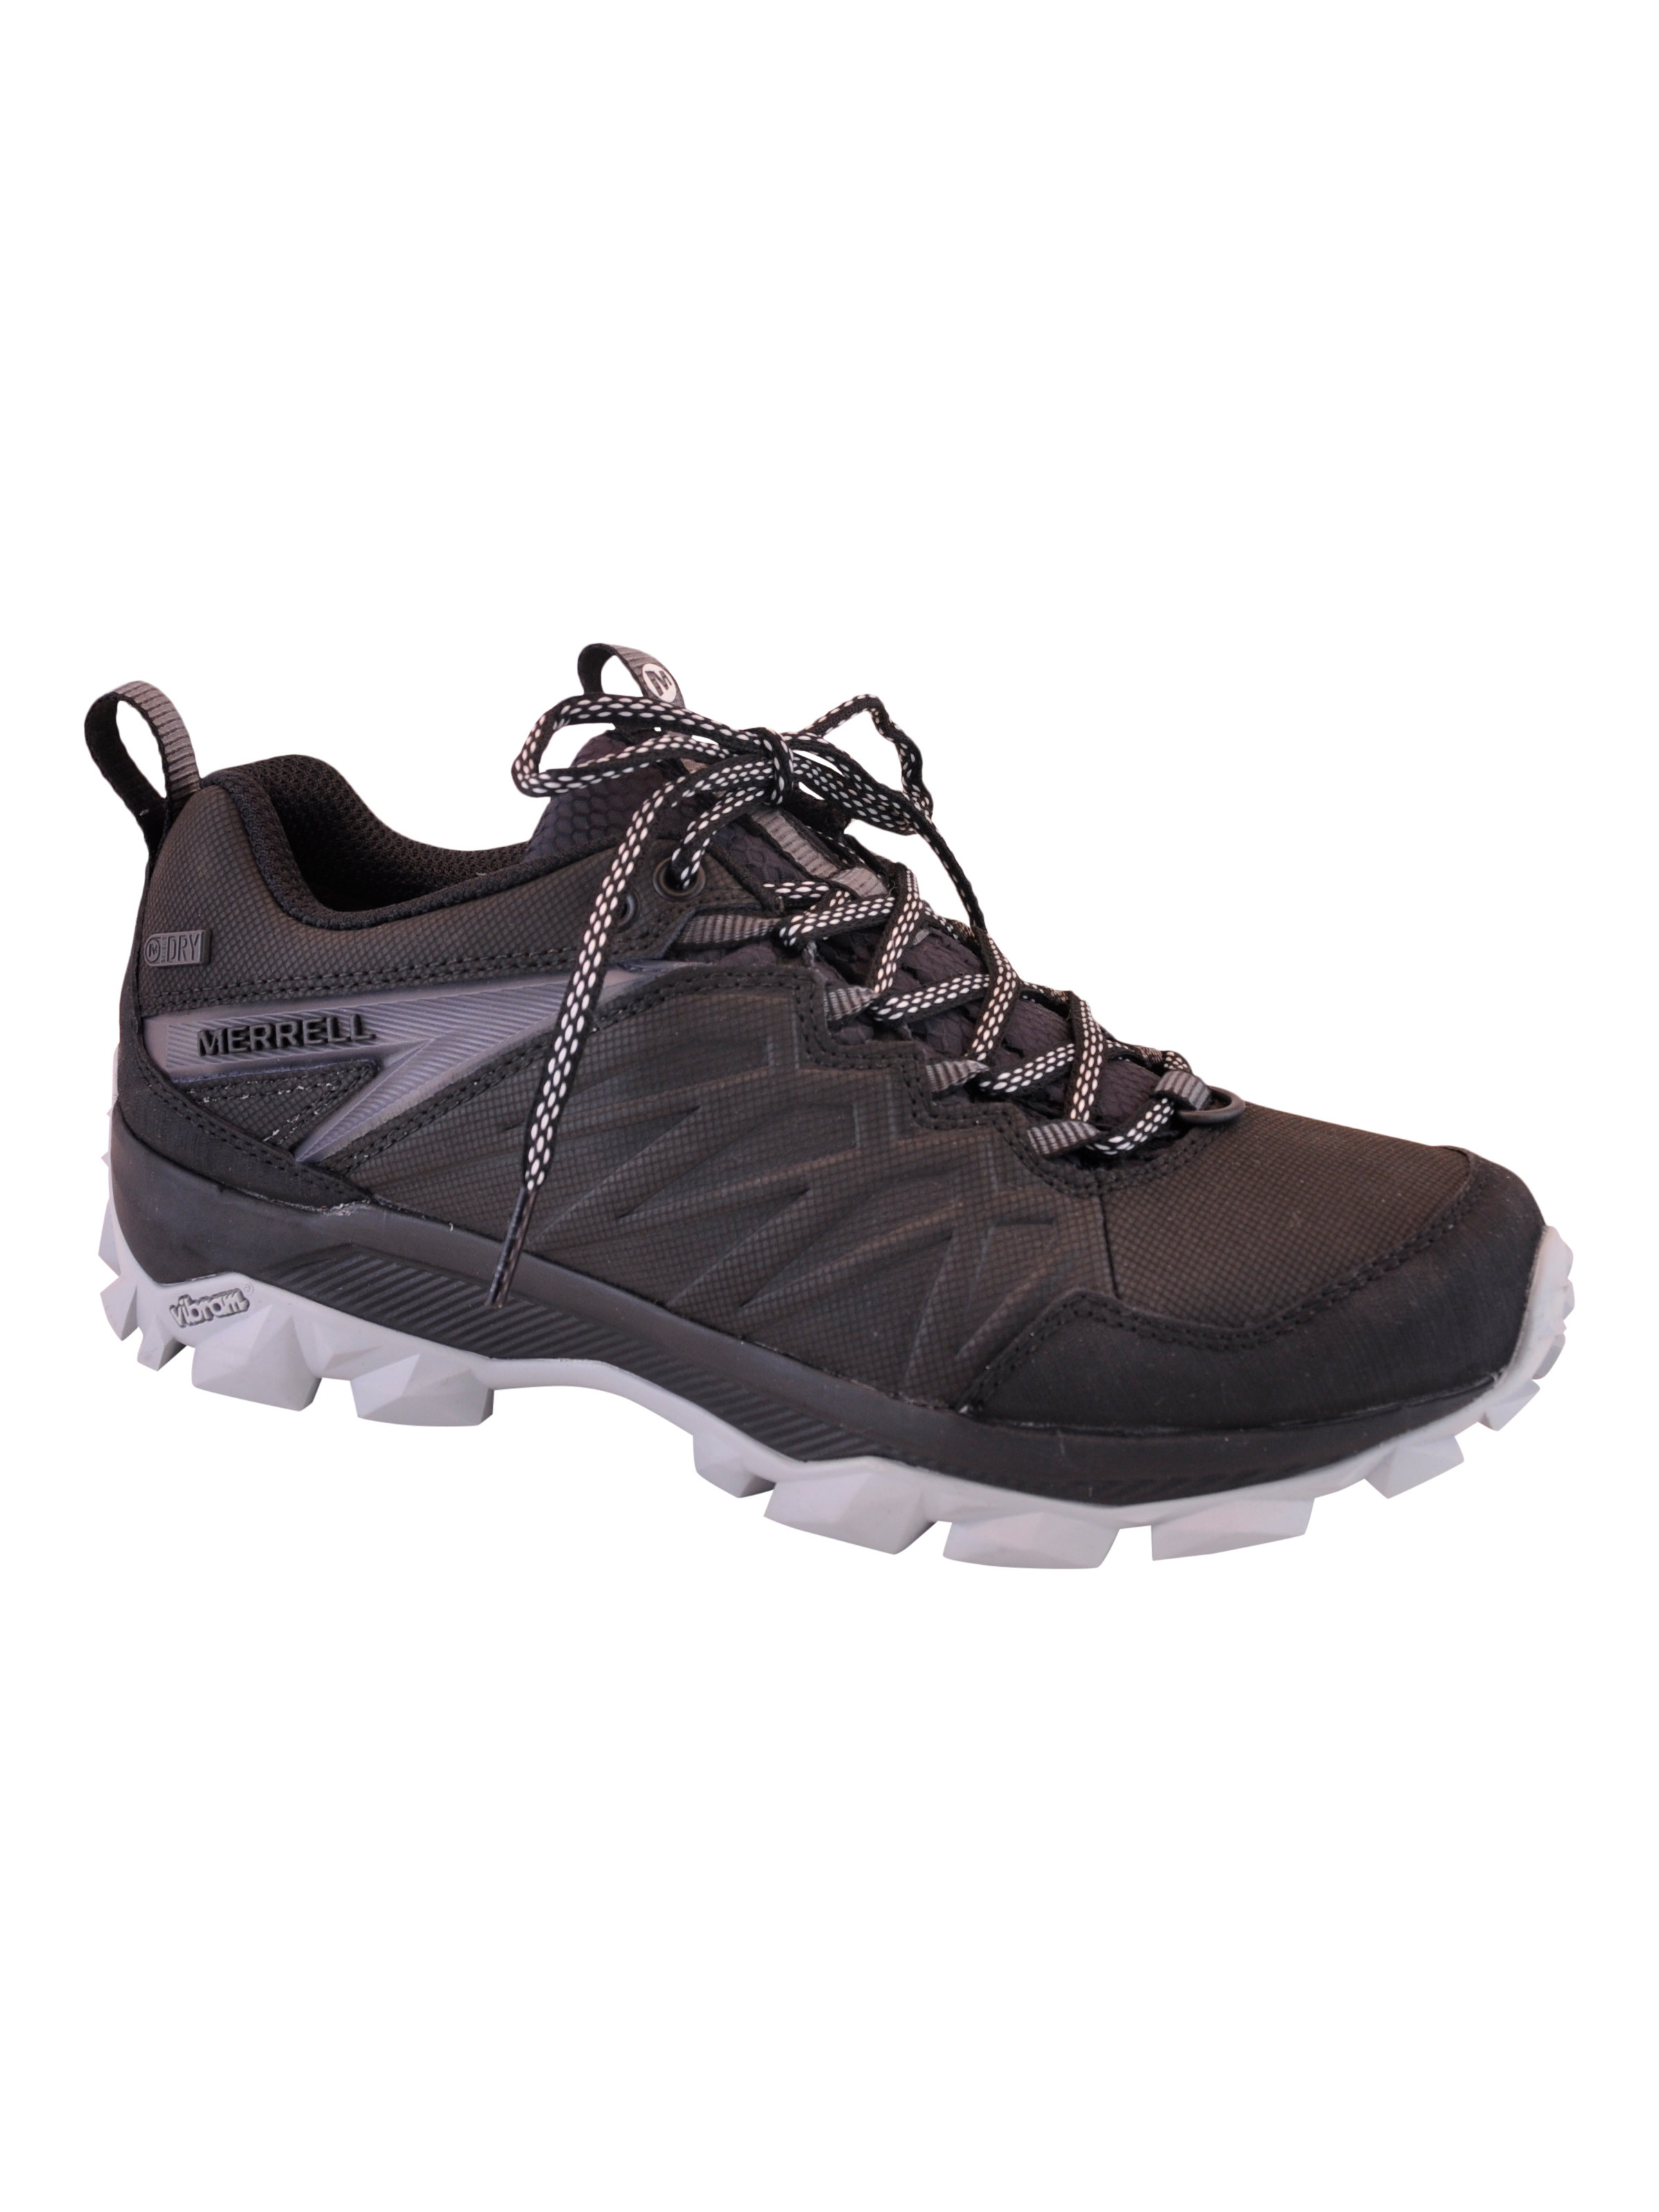 Merrell Thermo Freeze WP J46532